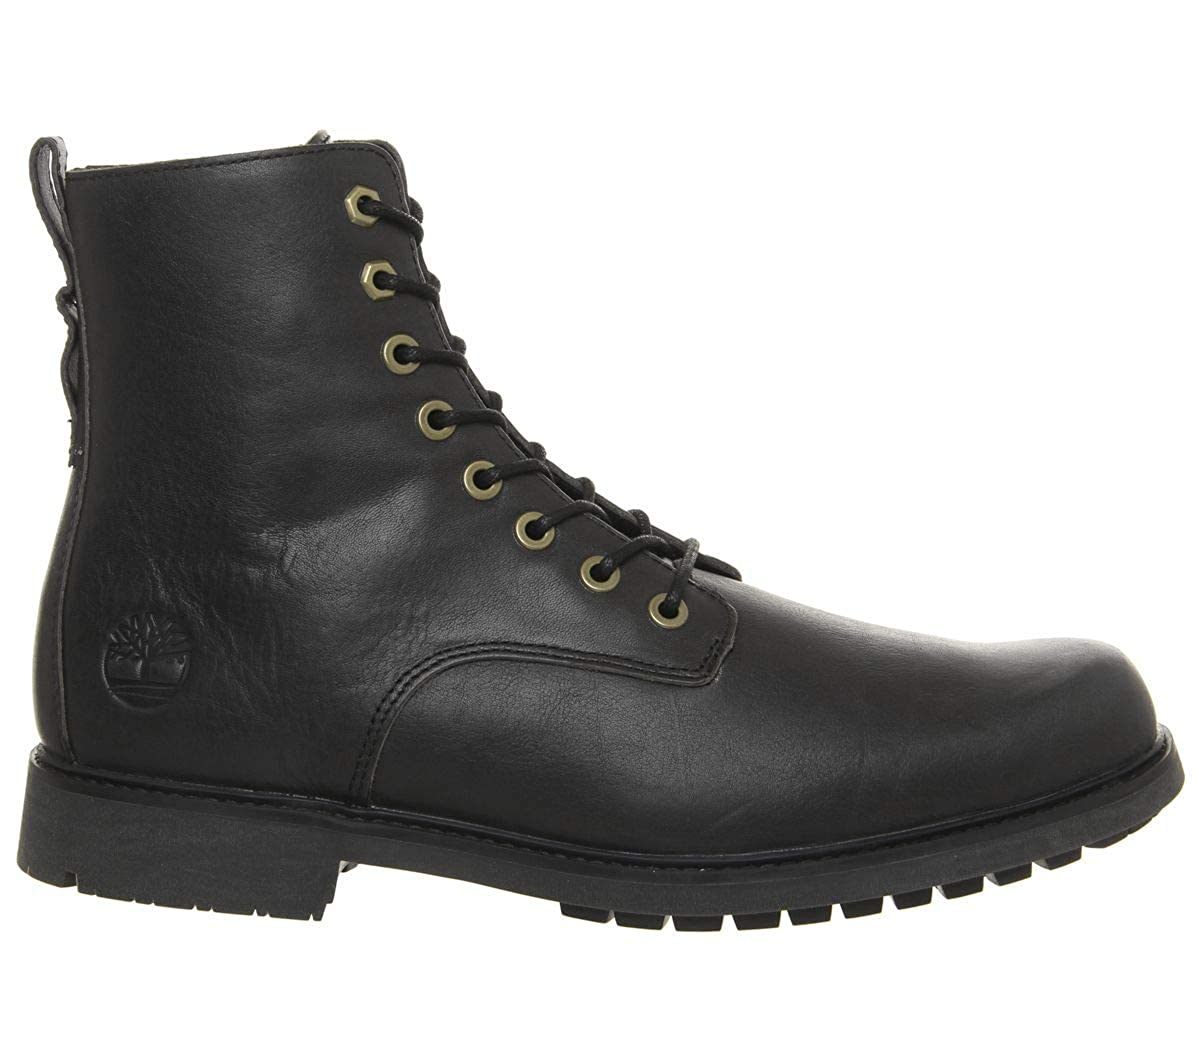 cfef4c01dcf Timberland Lux Lace Up Boots: Amazon.co.uk: Shoes & Bags